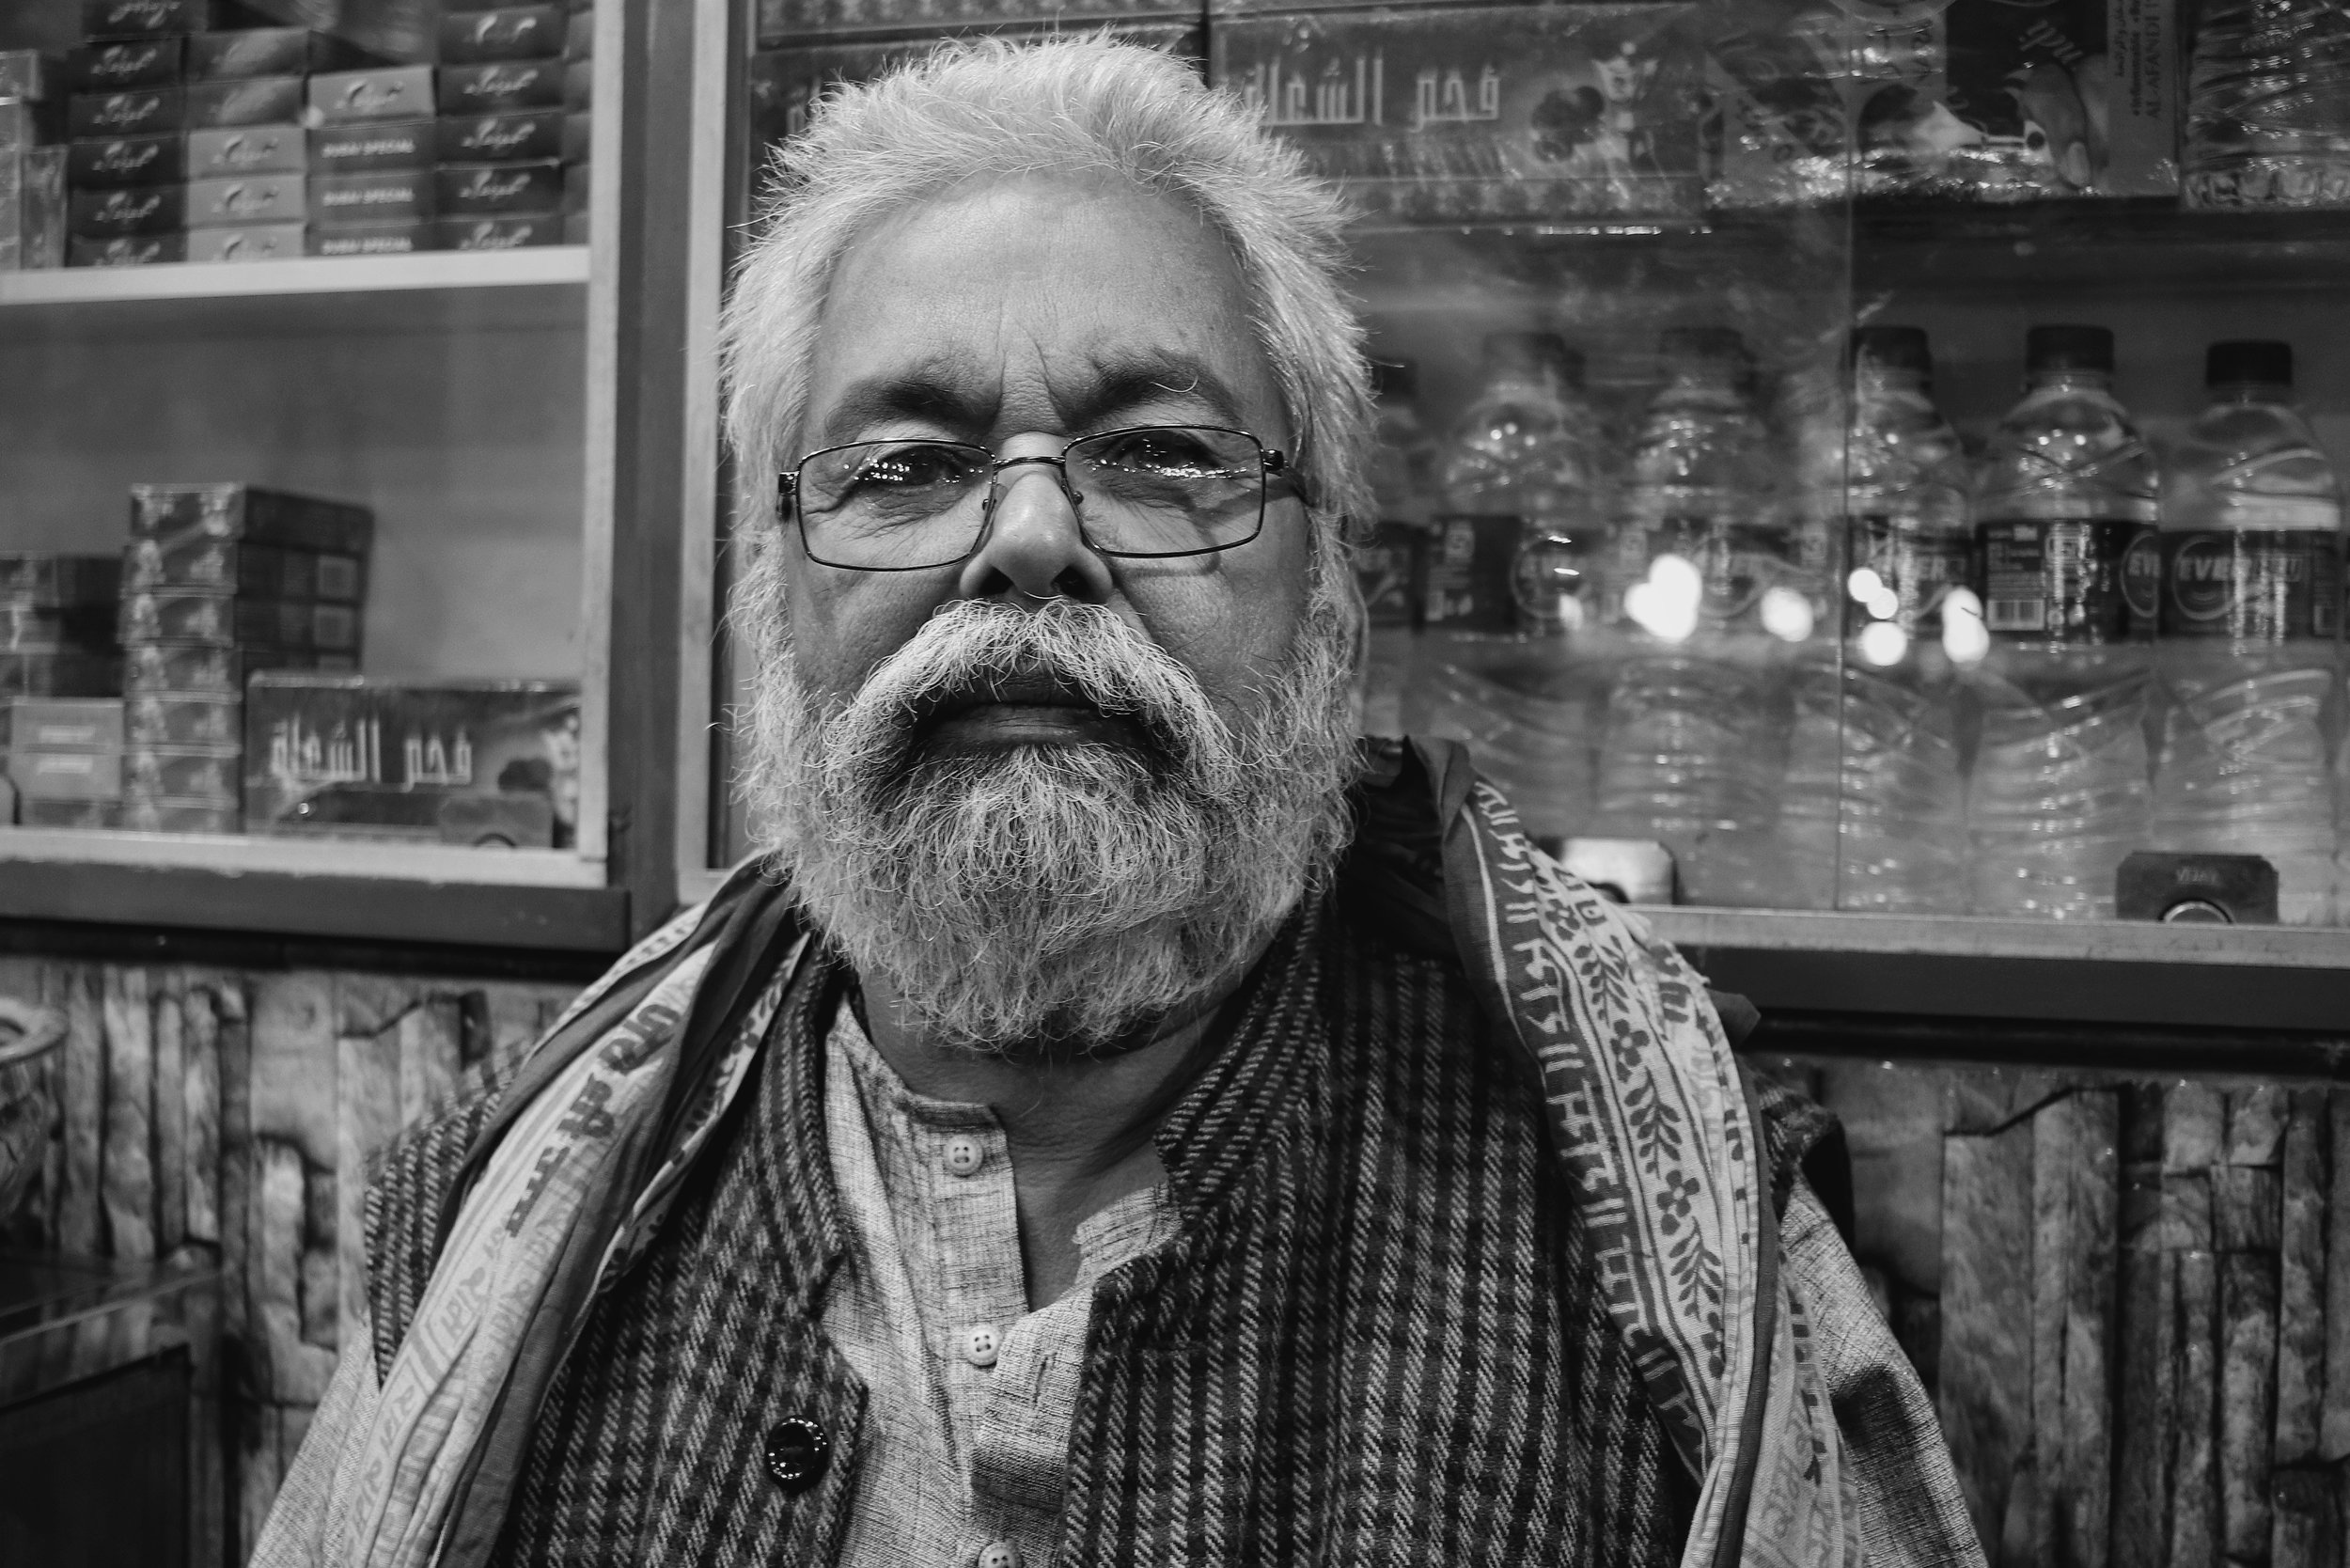 "One of the people I struck up a conversation with was this gentleman. He is the owner of a tobacco shop in Ghatkopar. We spoke for around fifteen minutes, talking about many different things. I complemented him on his look and he said, ""I wish you had met me earlier, the beard was much, much longer."""